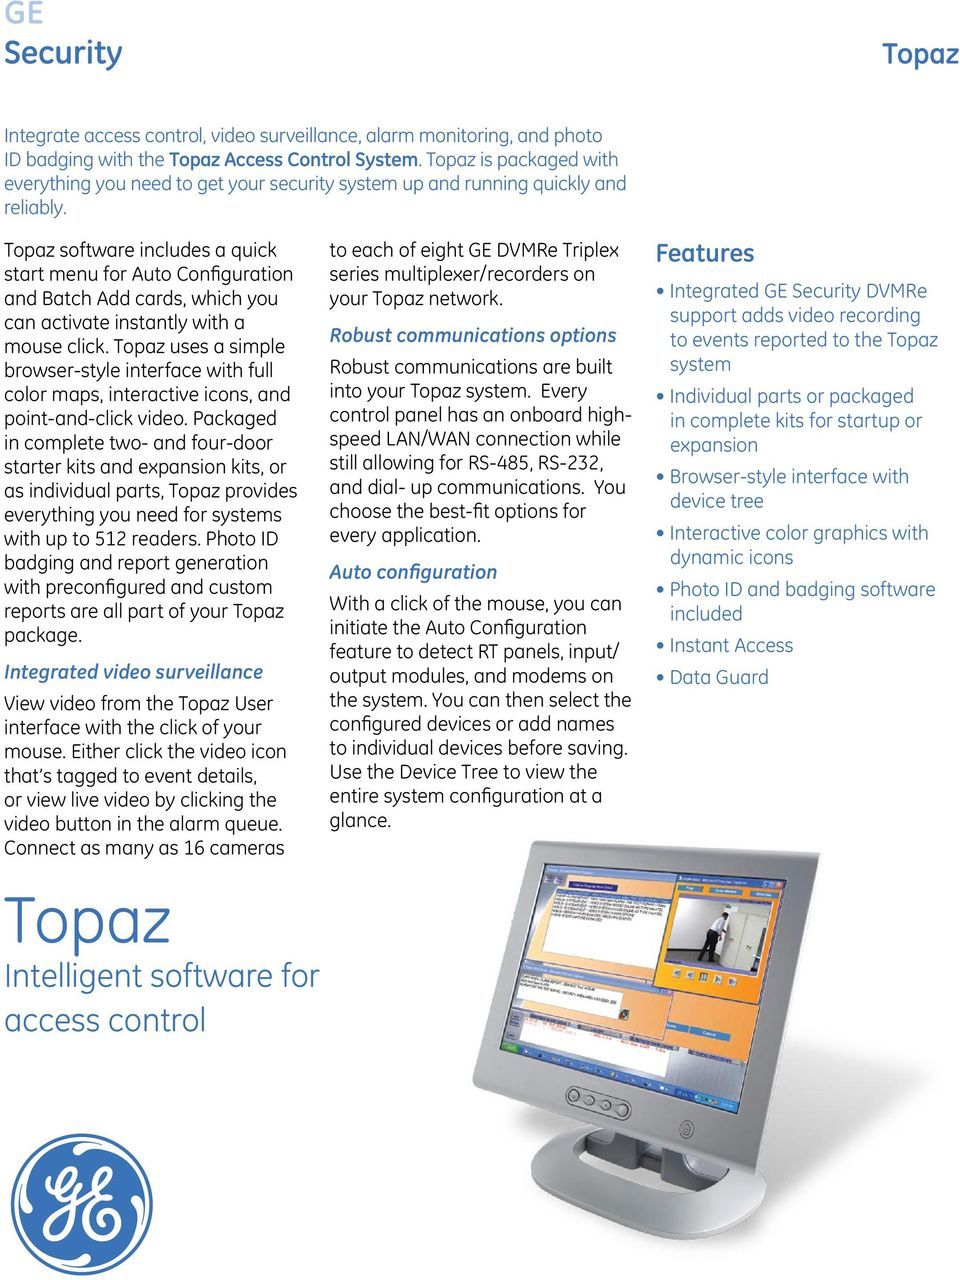 Topaz  GE Security  Intelligent software for access control  Topaz